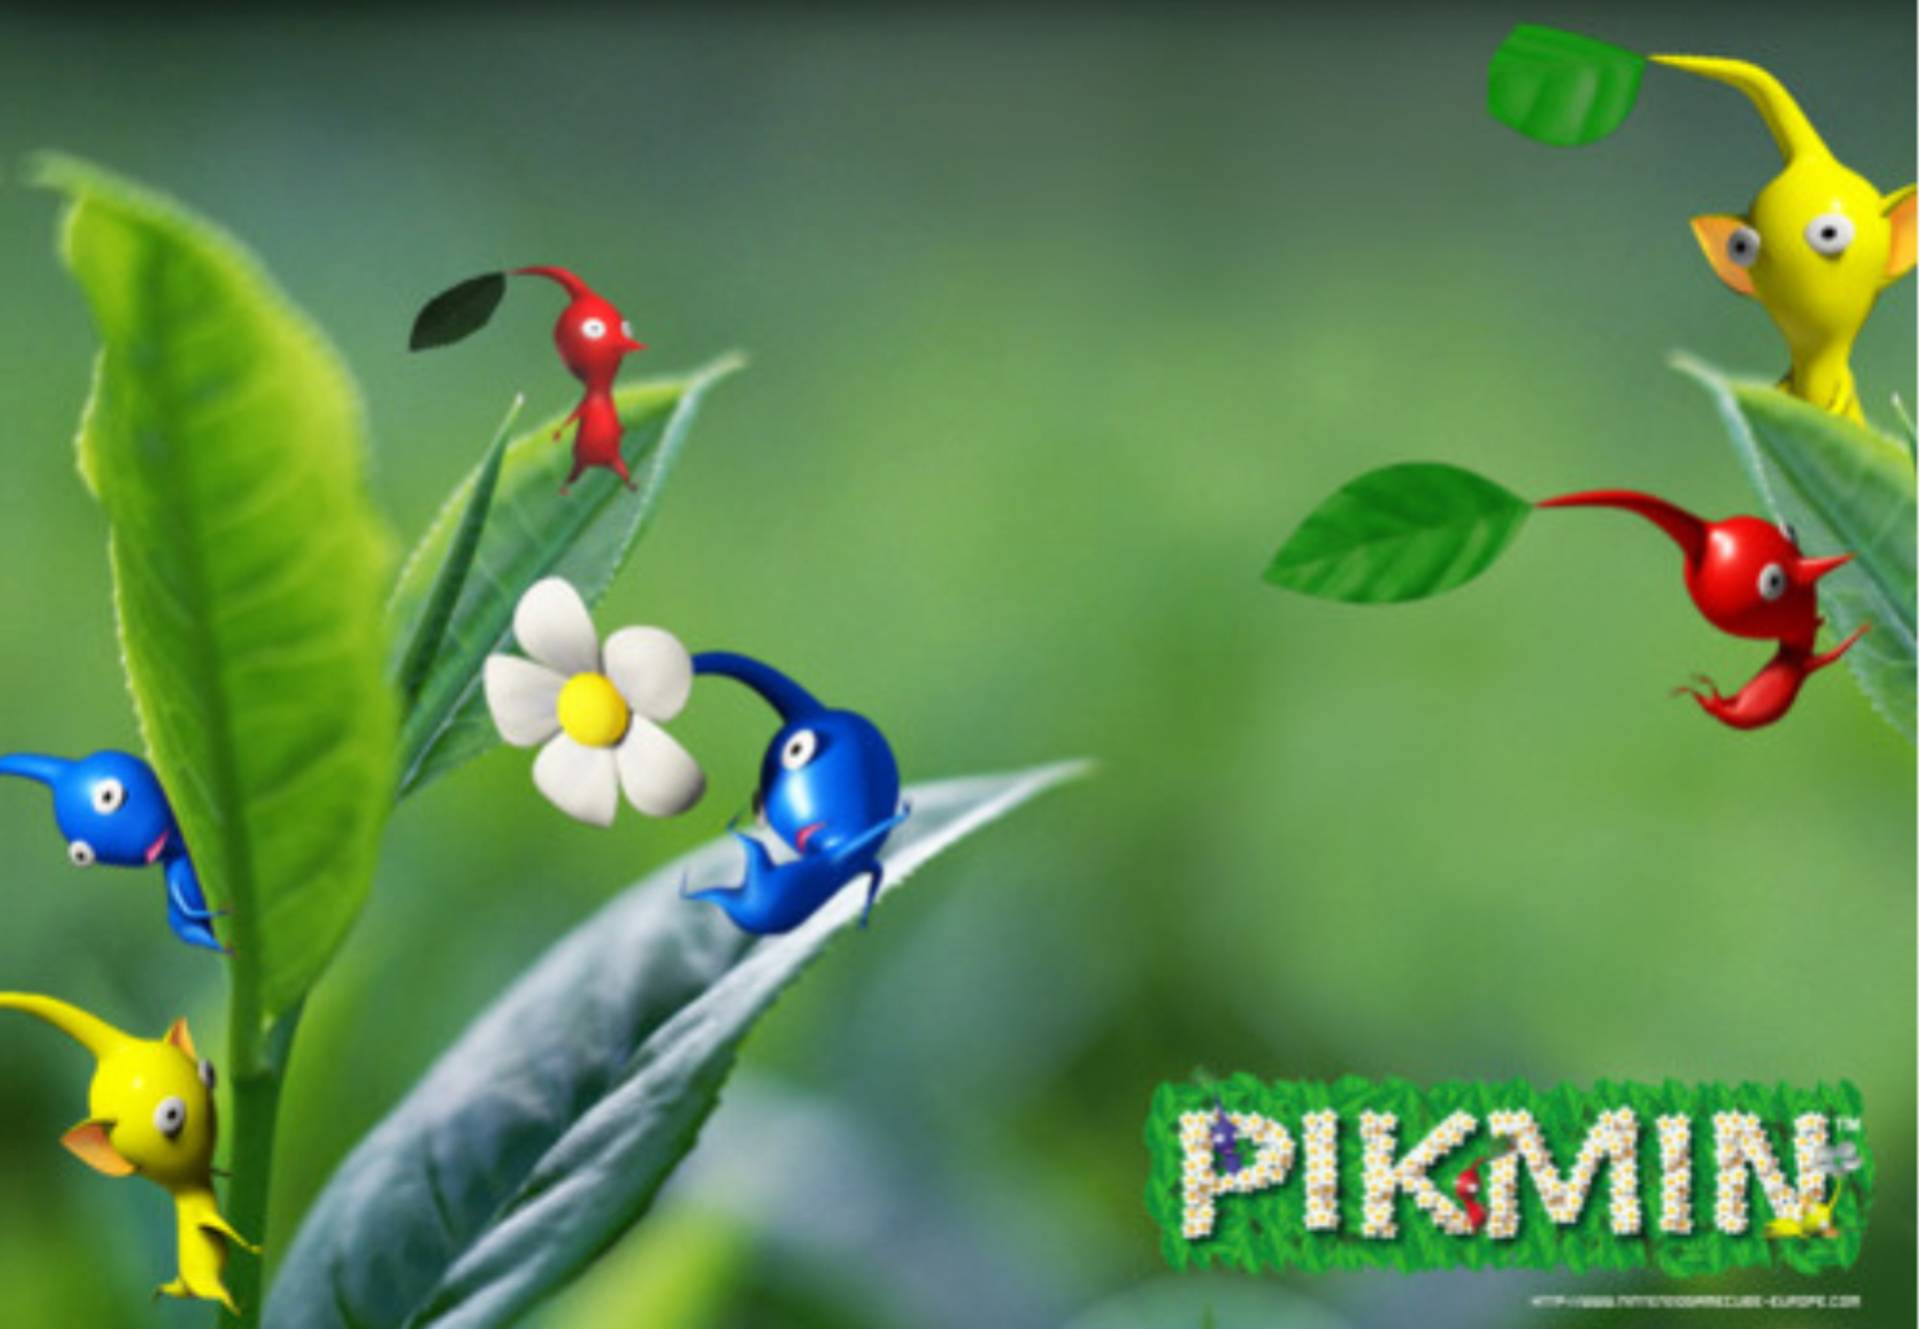 Pikmin 3 Wallpapers In HD